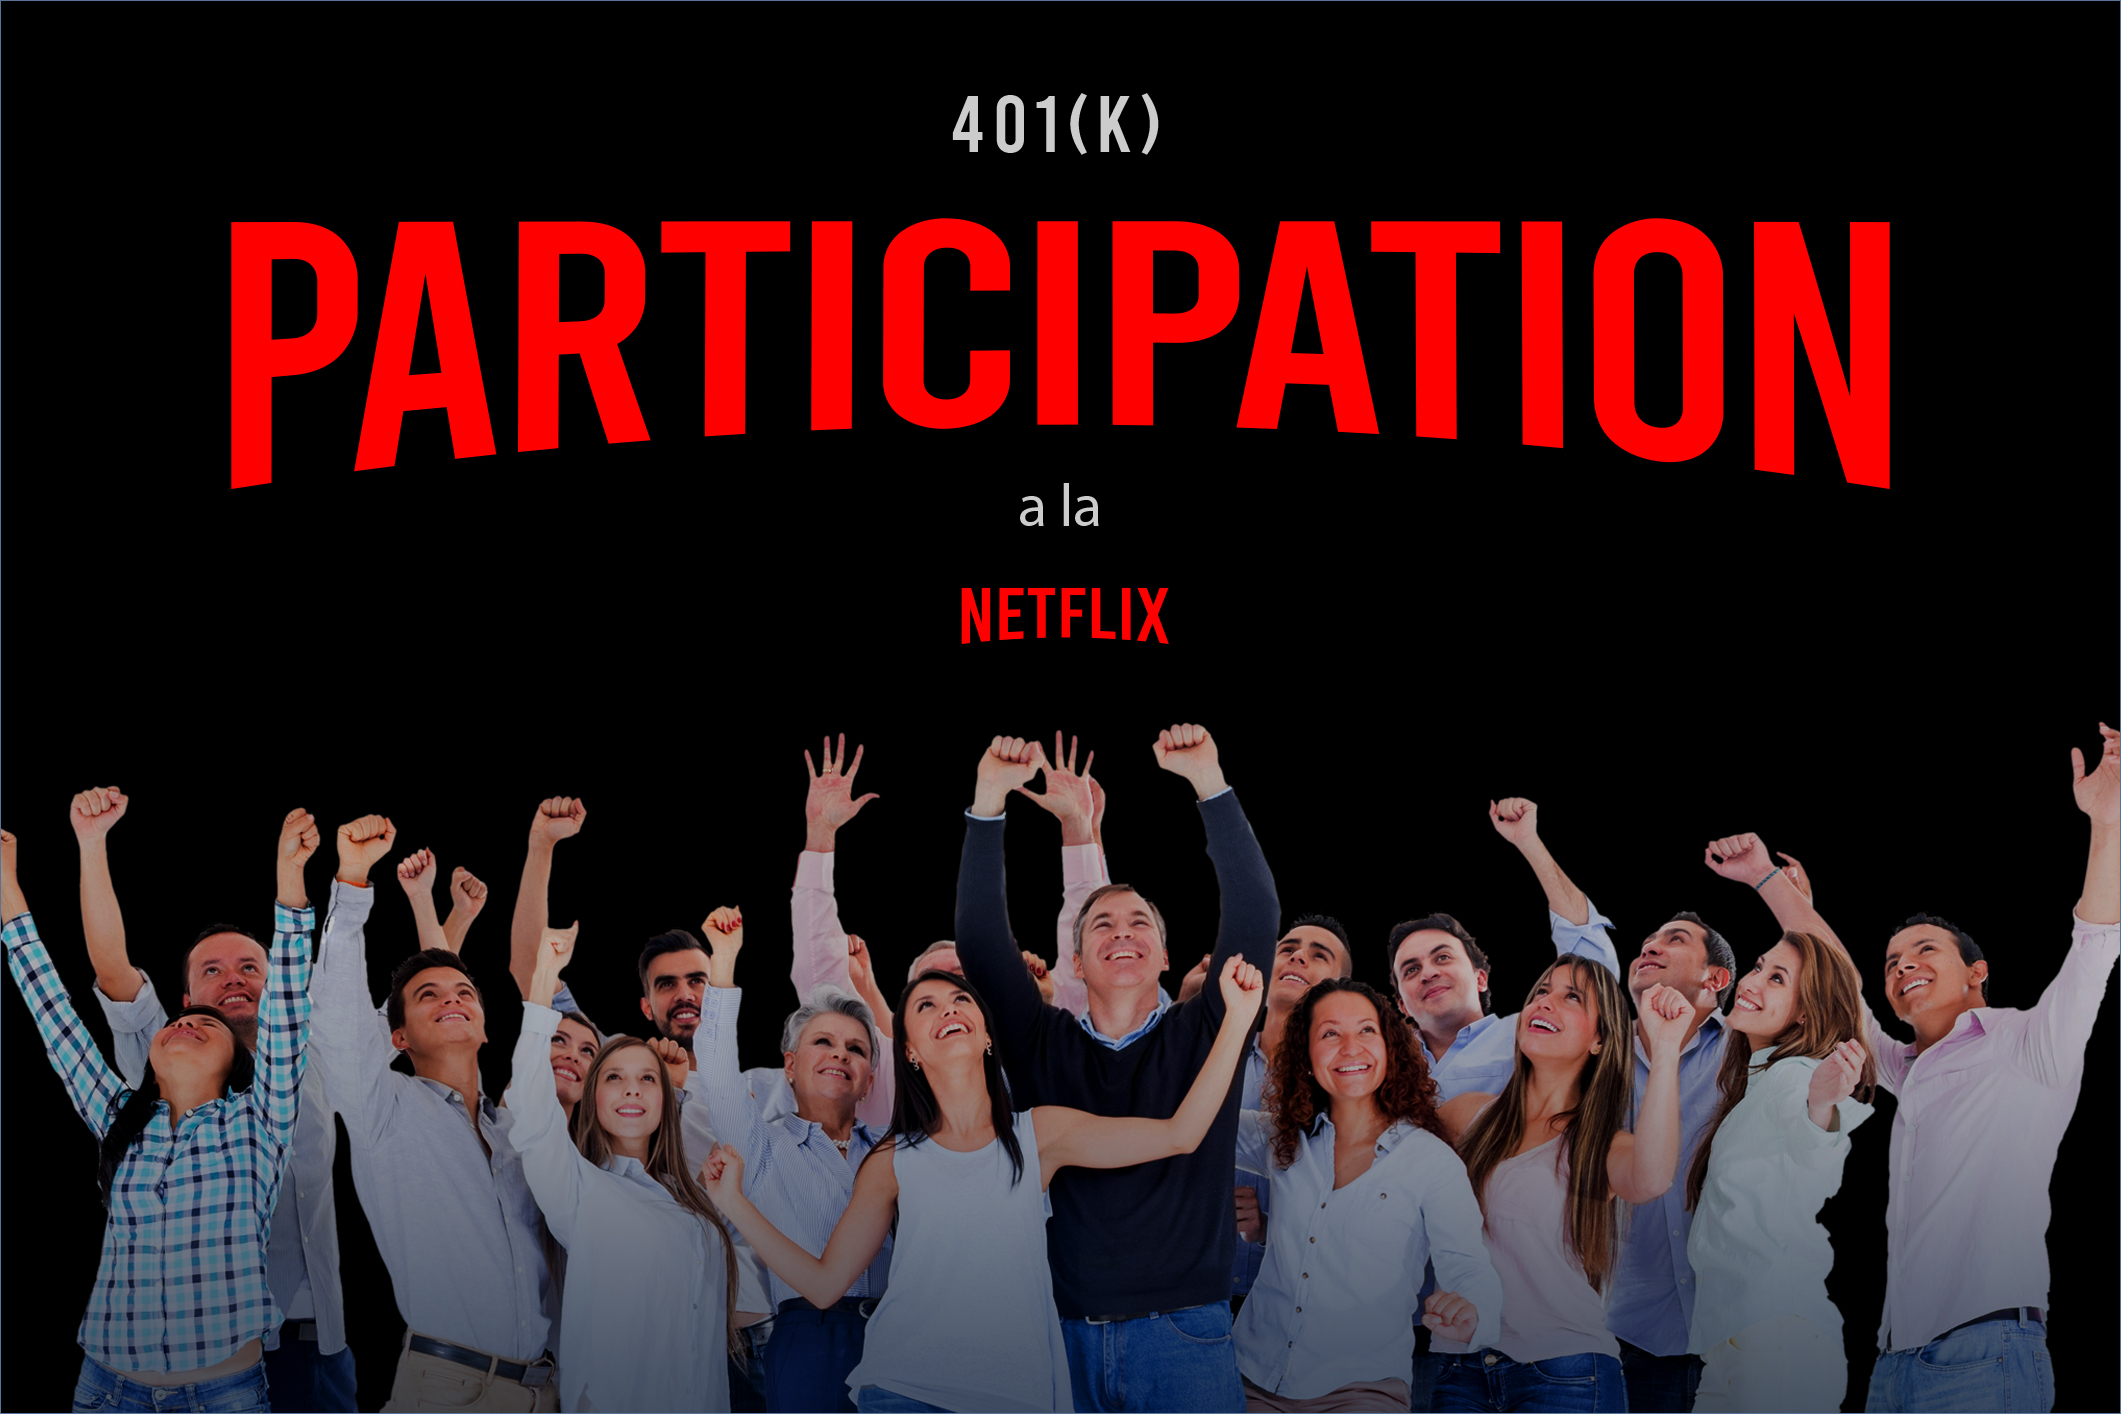 Increasing 401(k) Participation: 3 Brilliant Hacks You Can Steal from Netflix